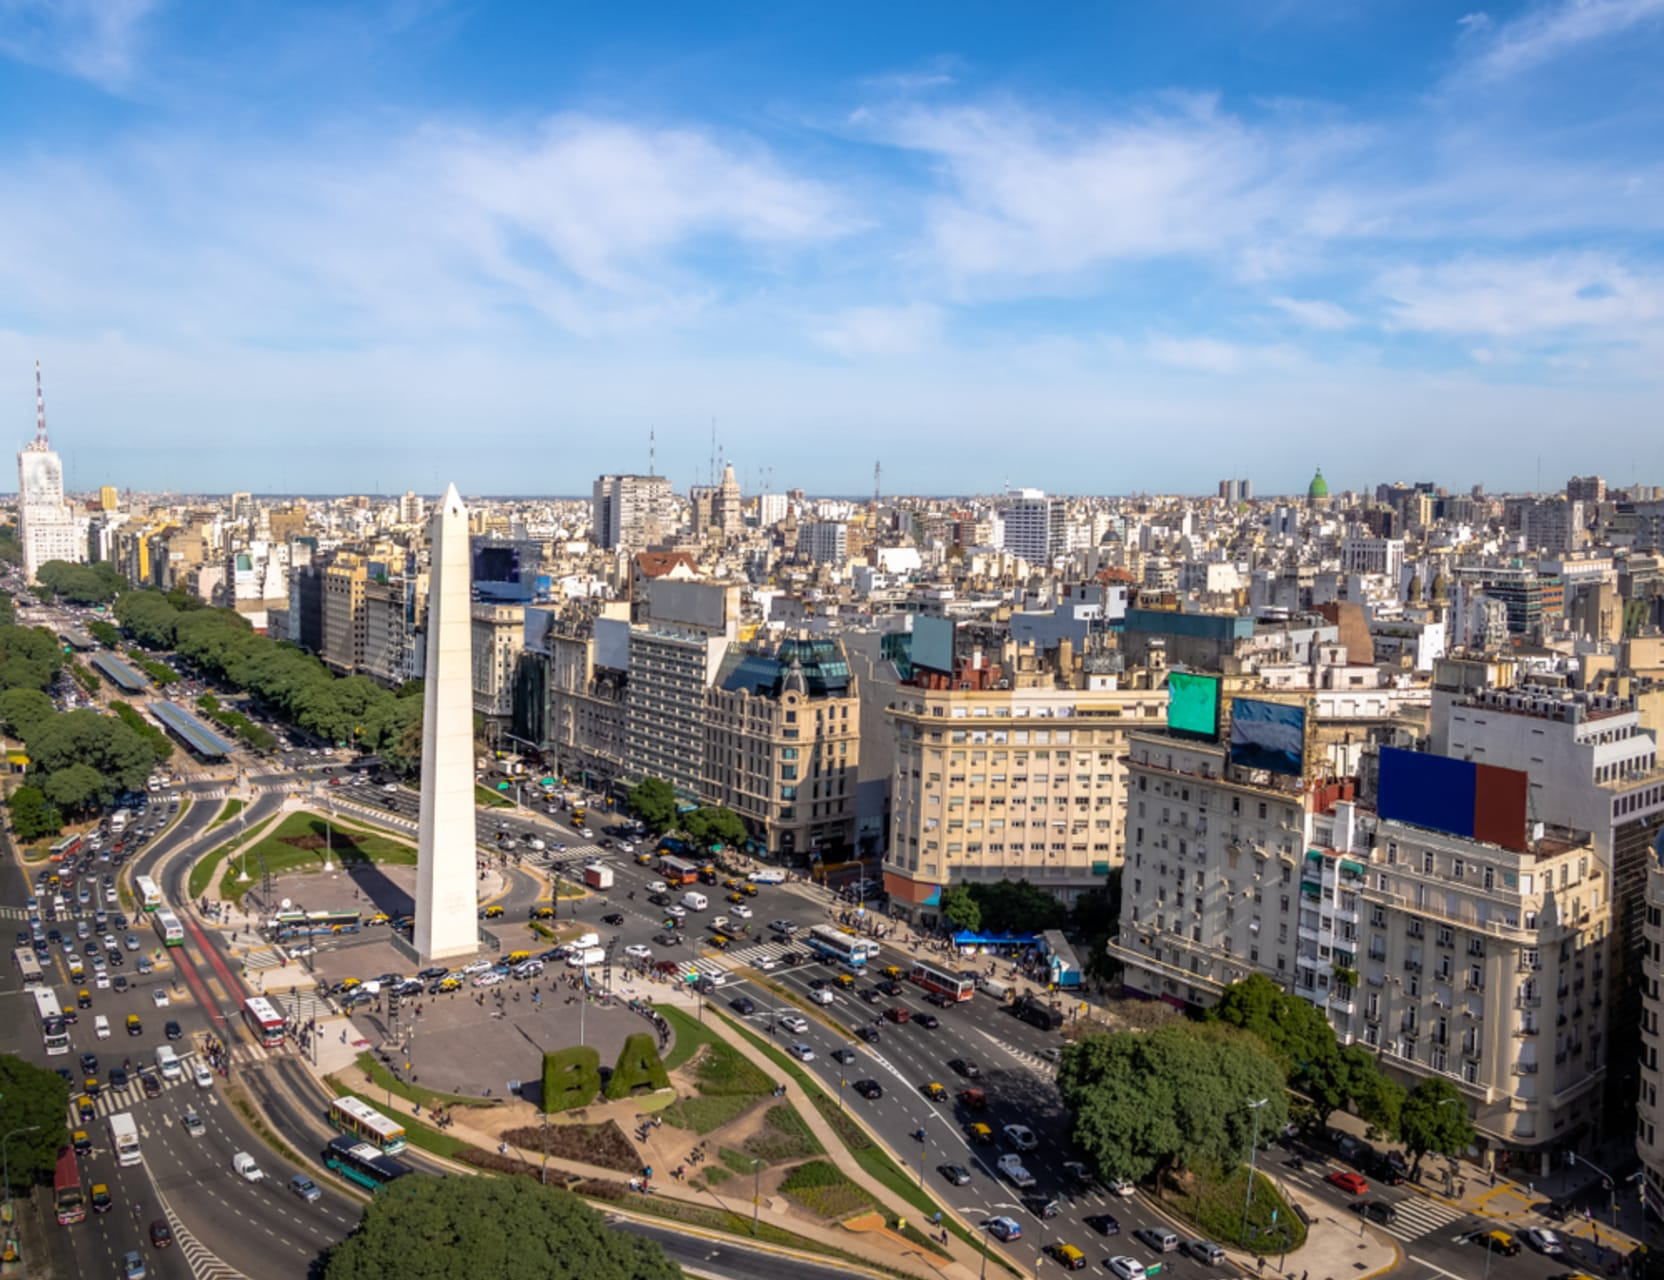 Buenos Aires - Buenos Aires: The Widest Avenue in the World and the Opera